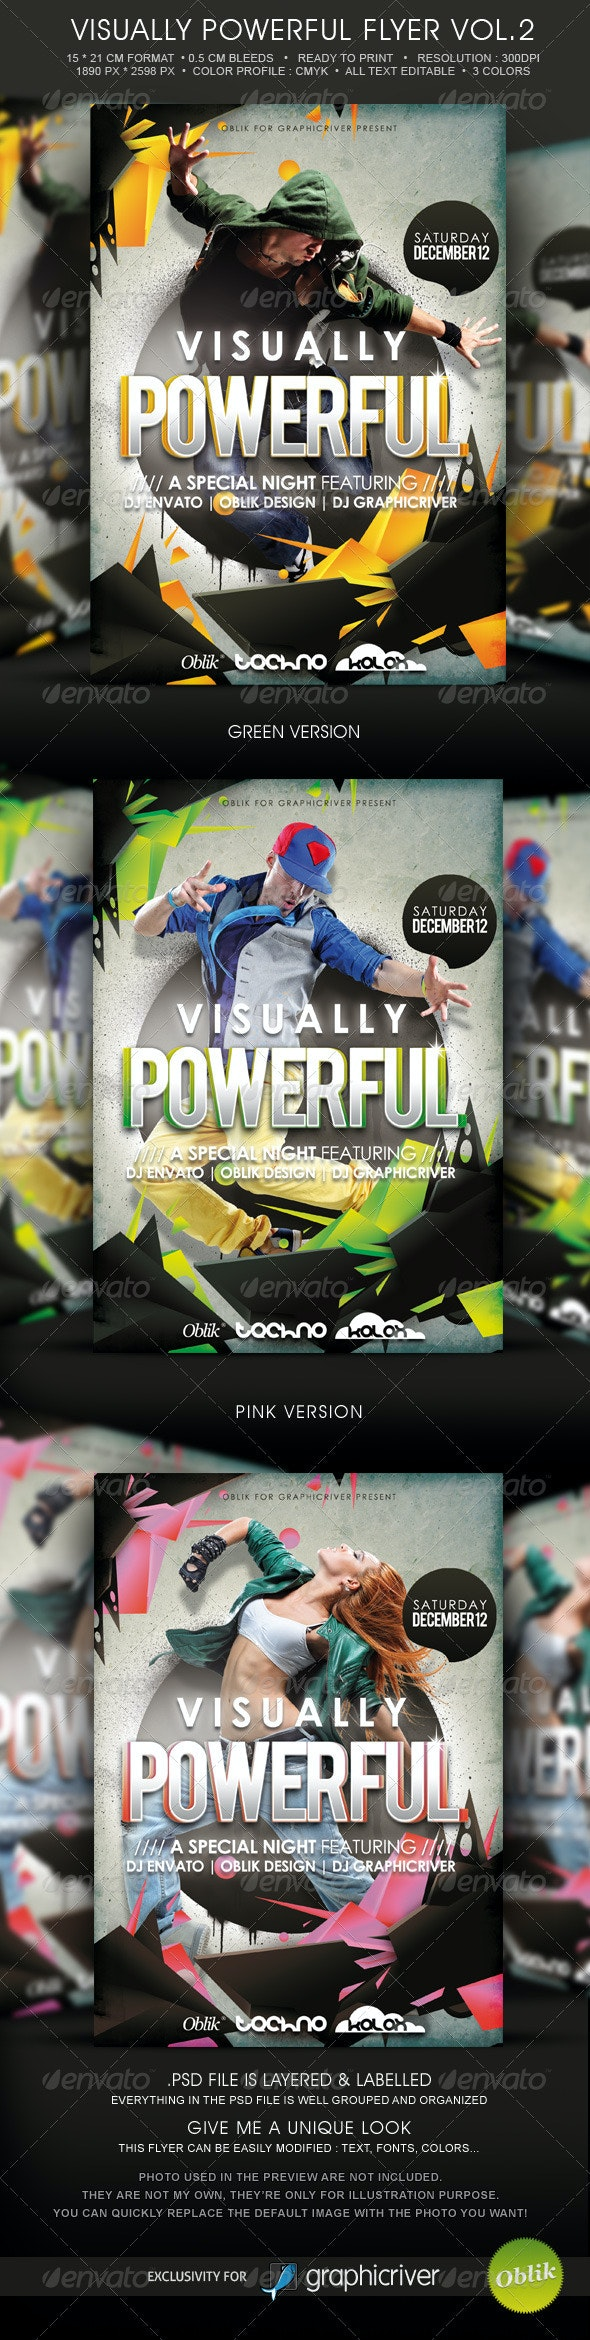 Visualy Powerful Template Flyer Vol.2 - Clubs & Parties Events